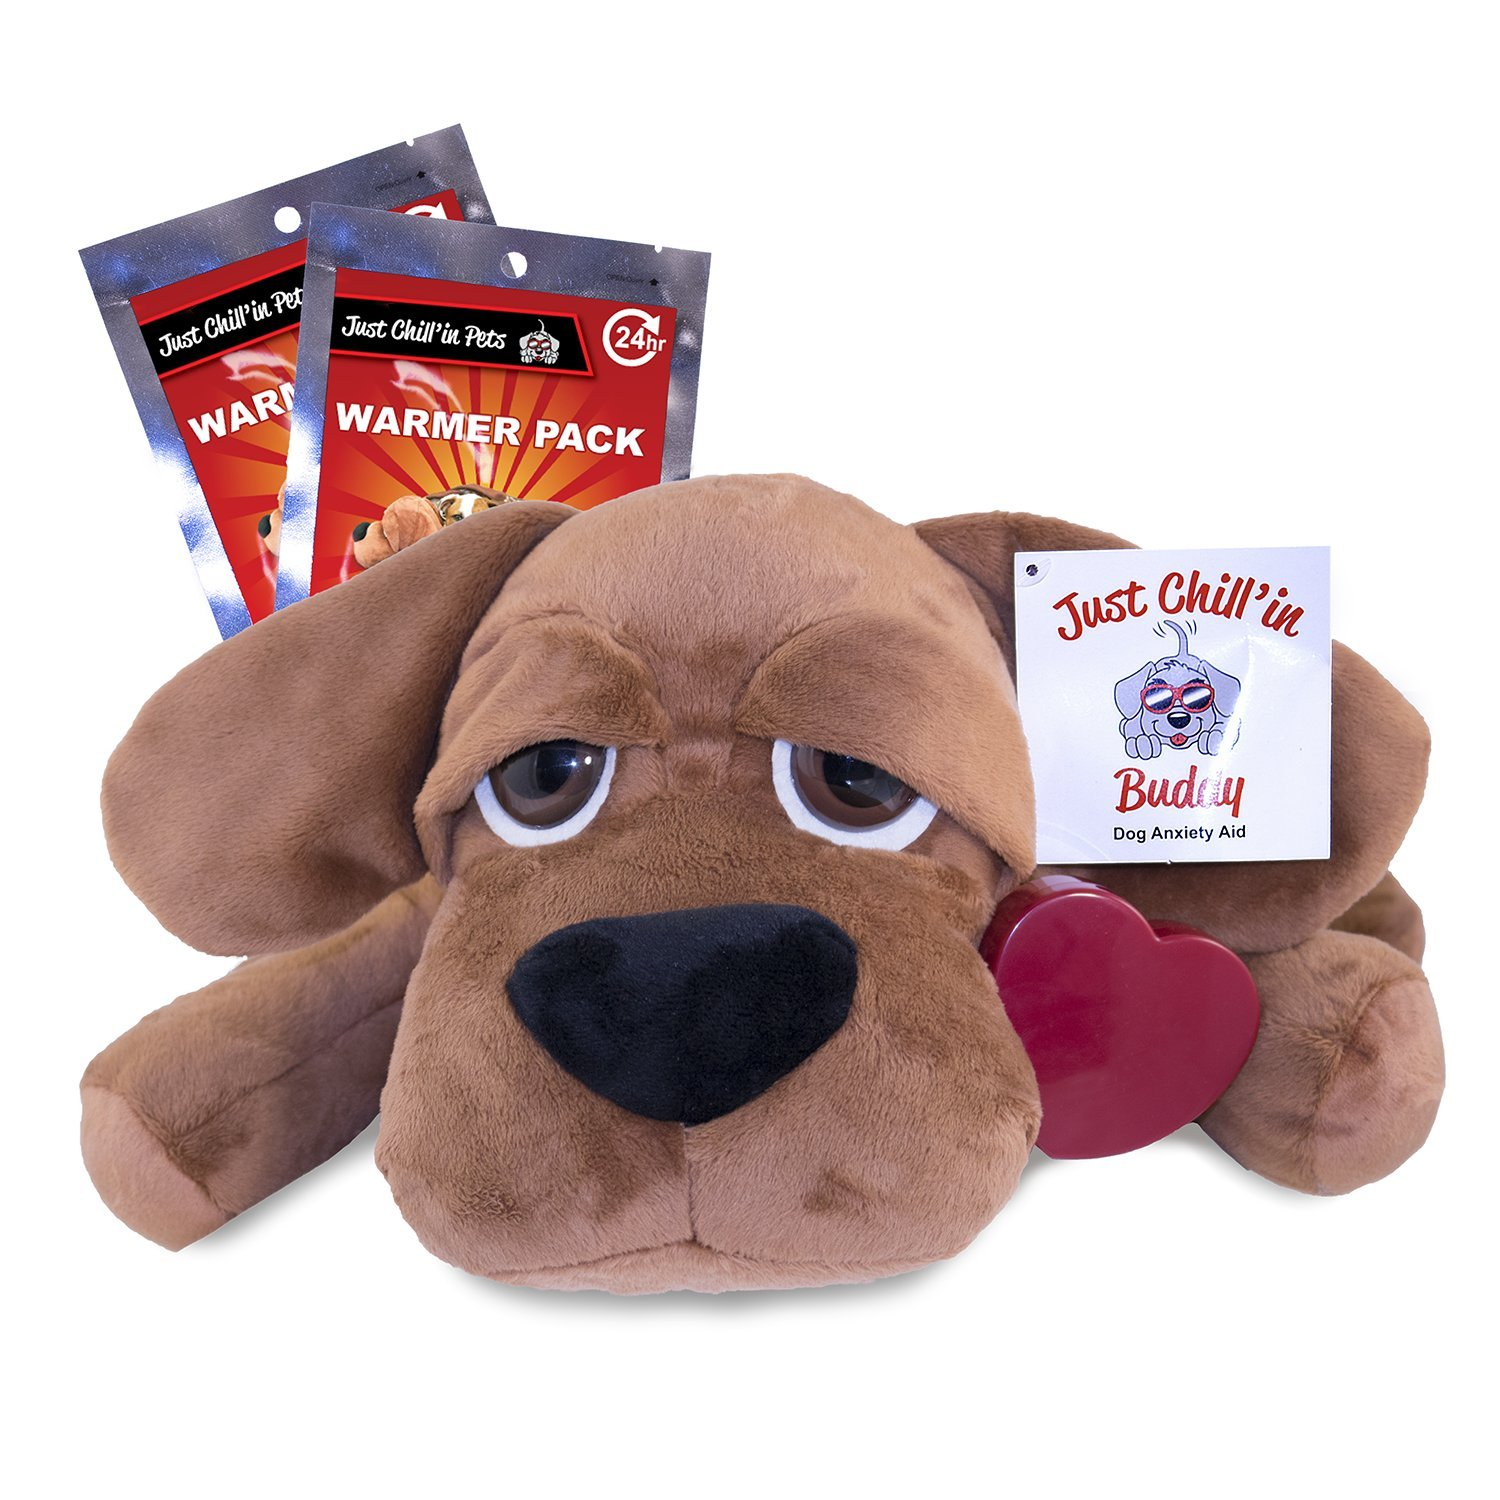 Just Chill'In Pets Heartbeat Puppy Toy for Separation Anxiety Relief - Dog Snuggle Puppy Plush Toy with Heartbeat